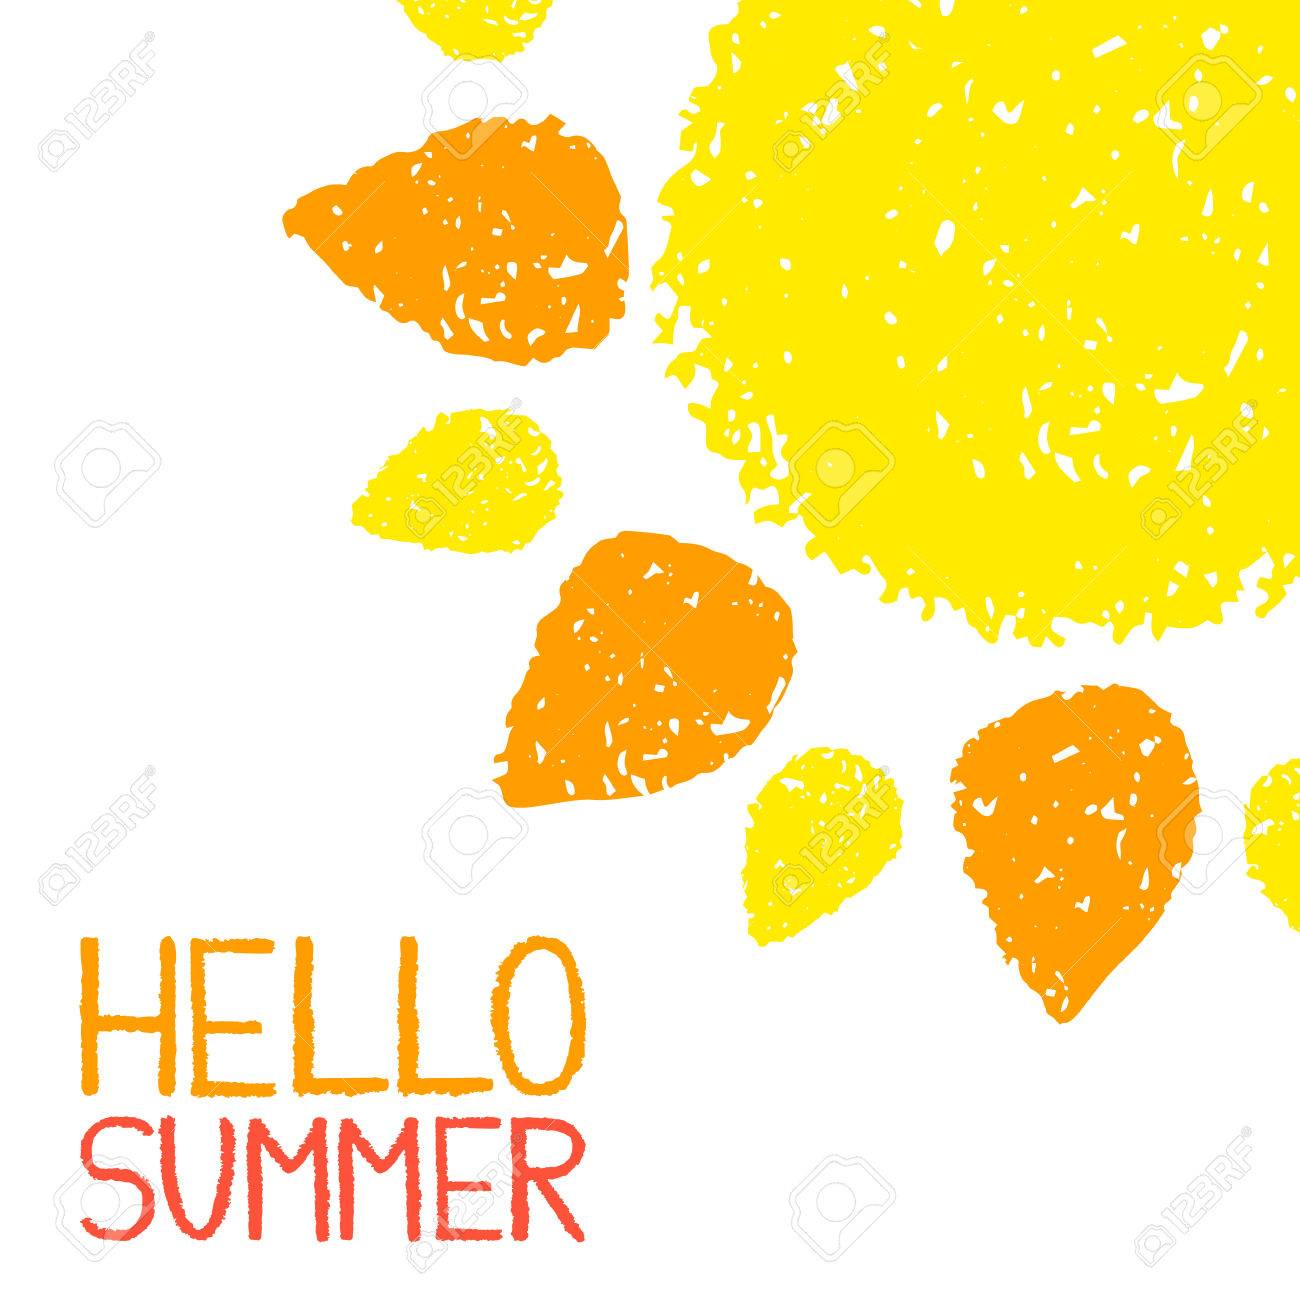 hello summer poster hand painted with oil pastel crayons bright